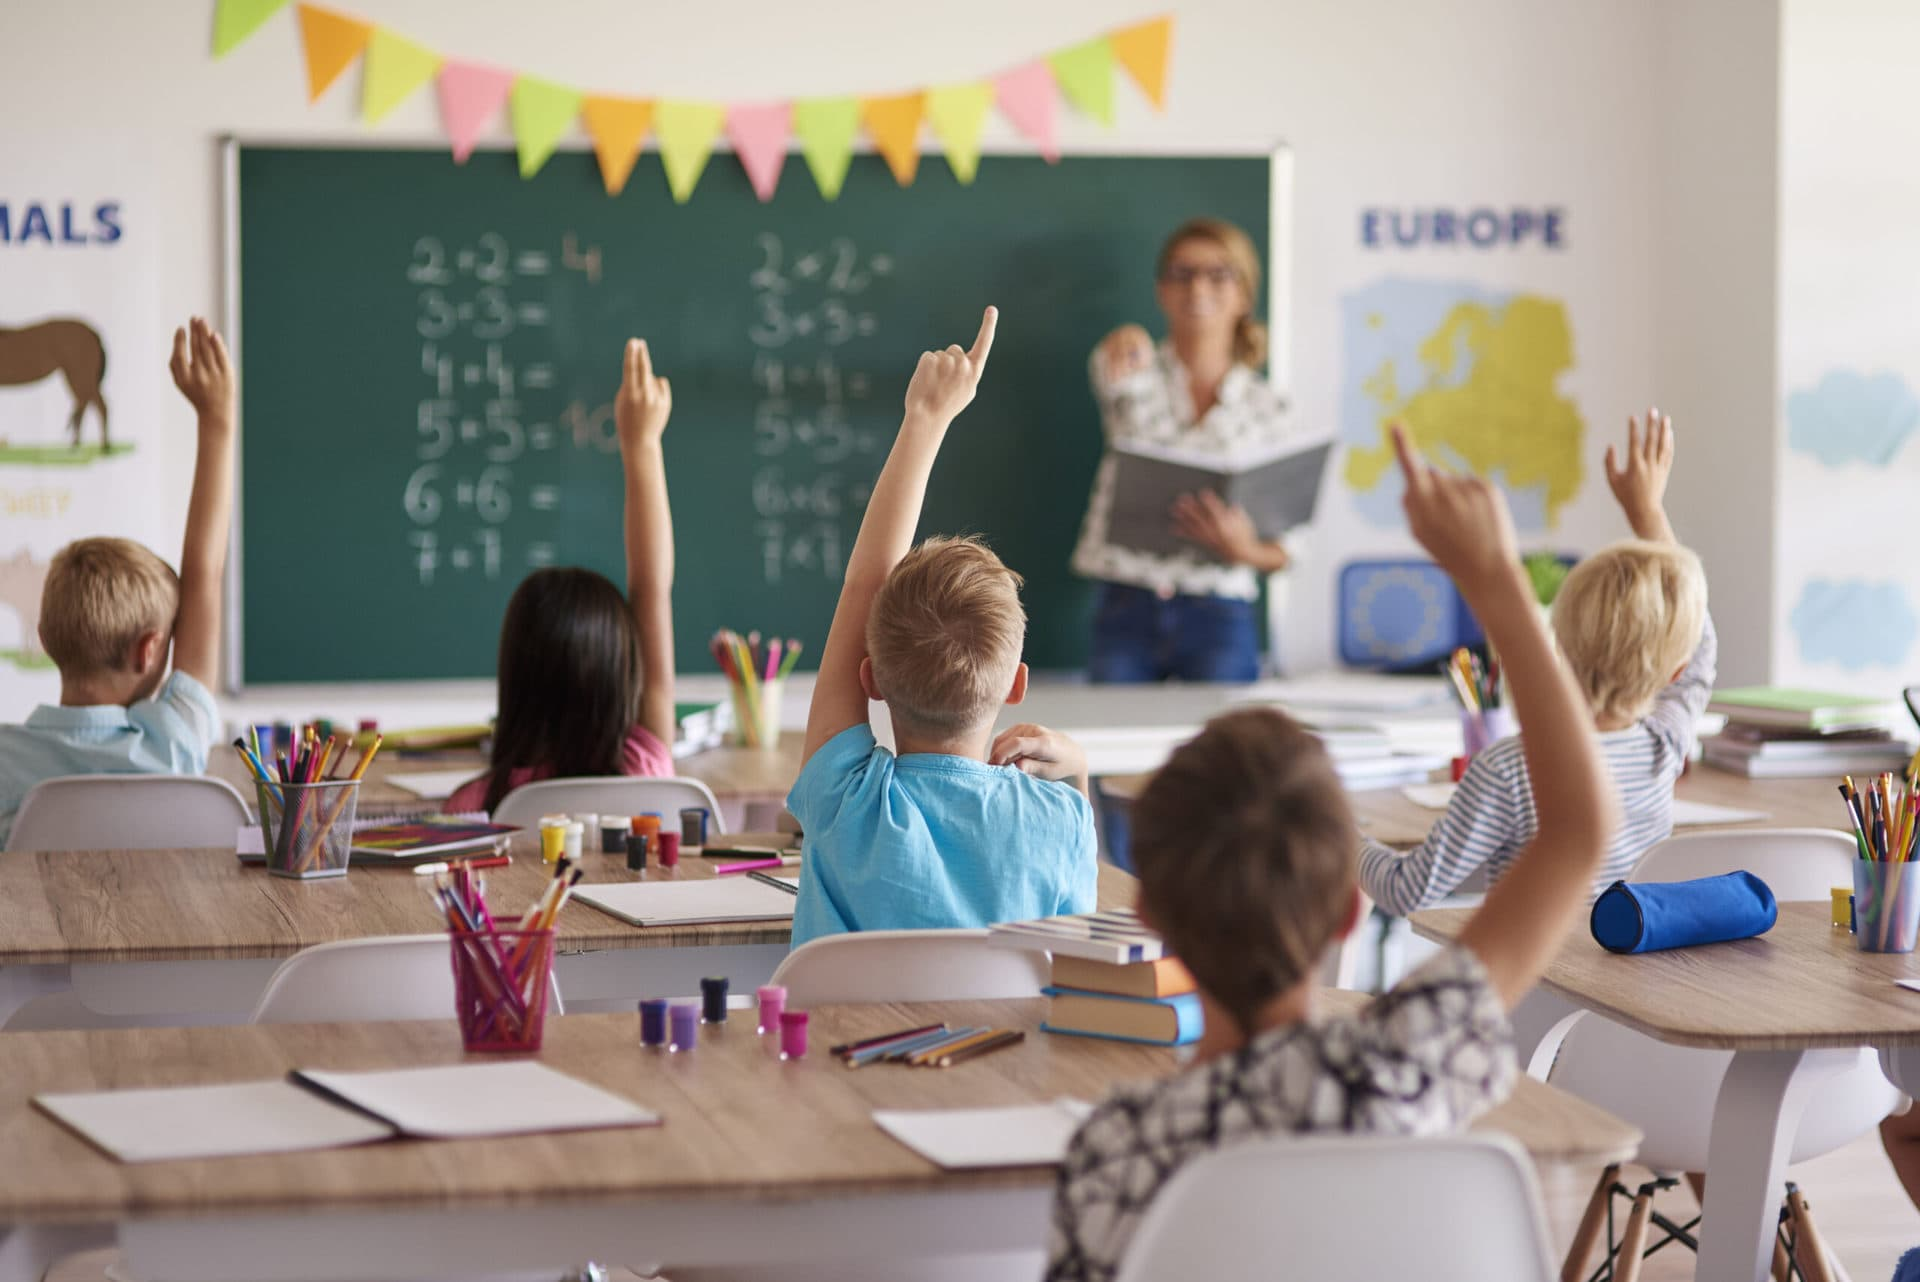 Education Buying - What do HR professionals do in schools?